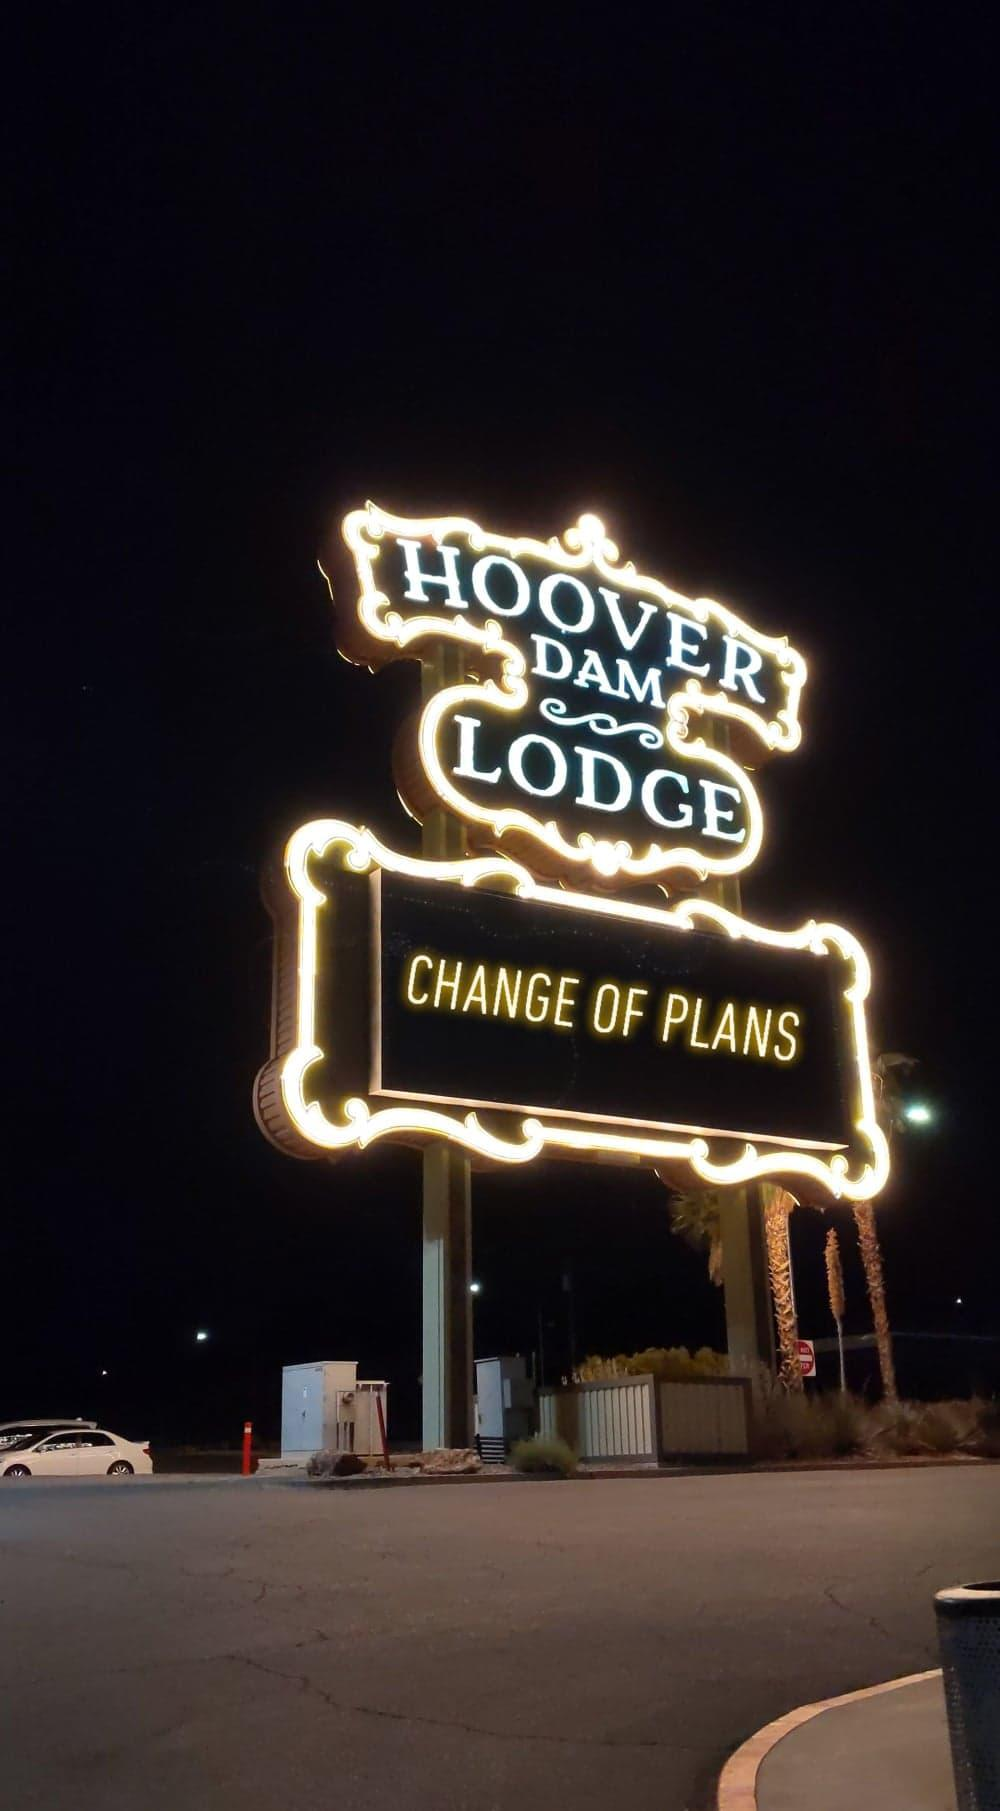 hoover dam lodge and casino